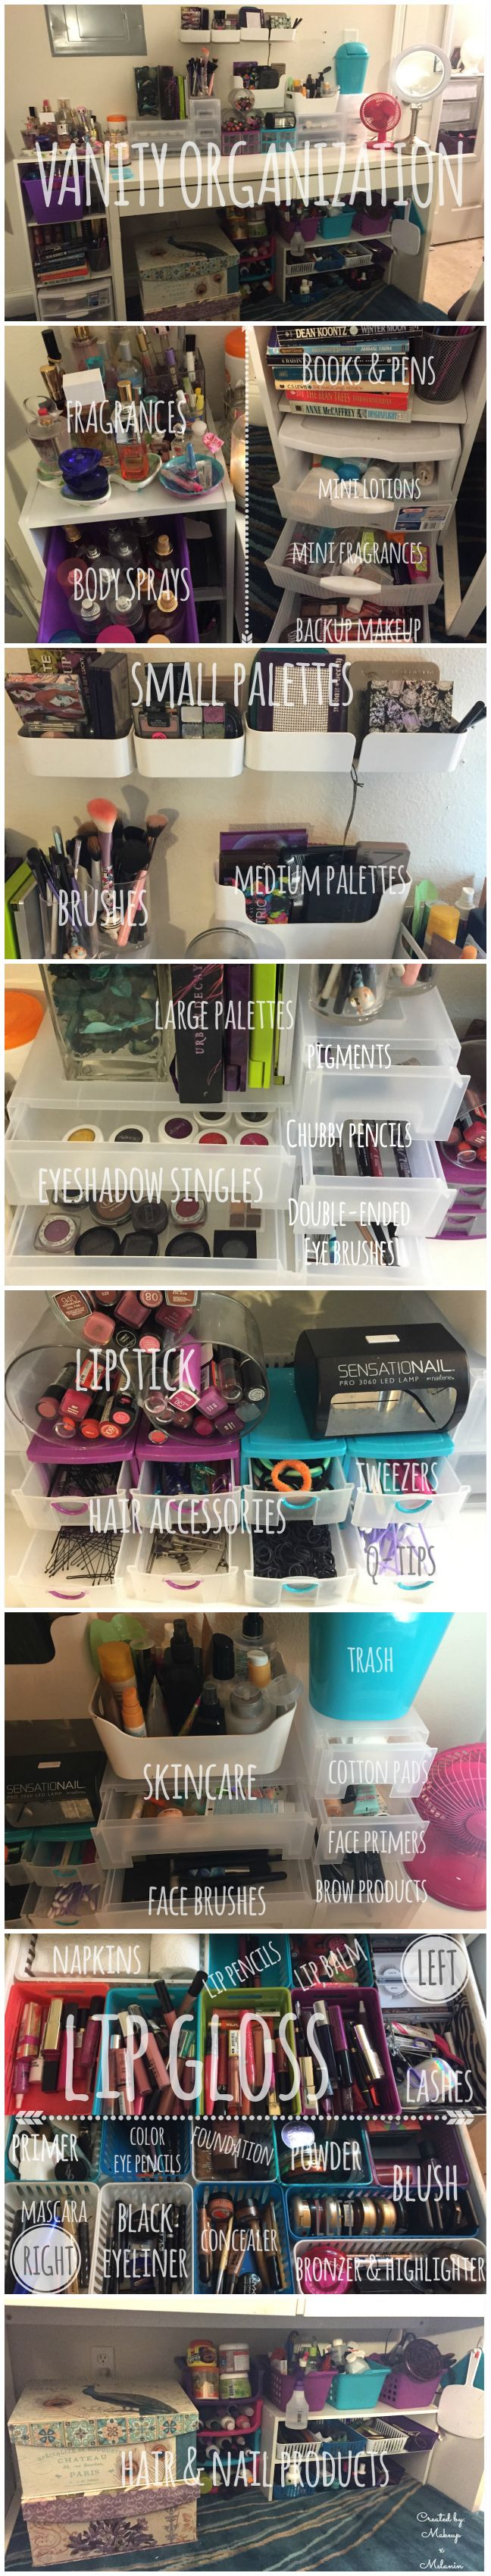 Acrylic Makeup Organizer Target Impressive Vanity Organization Using Items From Ikea Target And Dollar Tree 2018